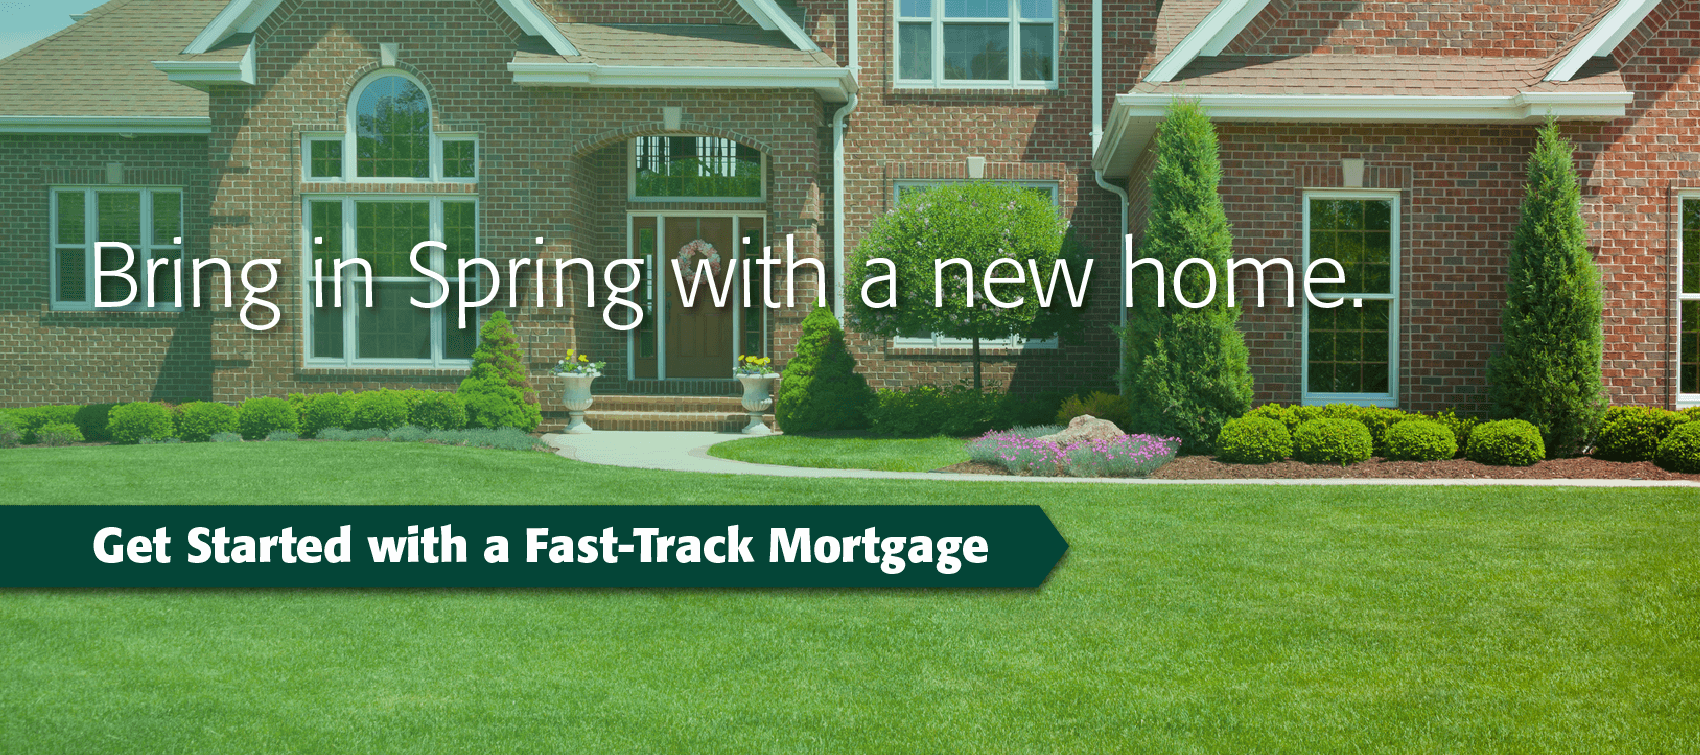 Bring in Spring with a new home. APPLY ONLINE for a Quick Approval!